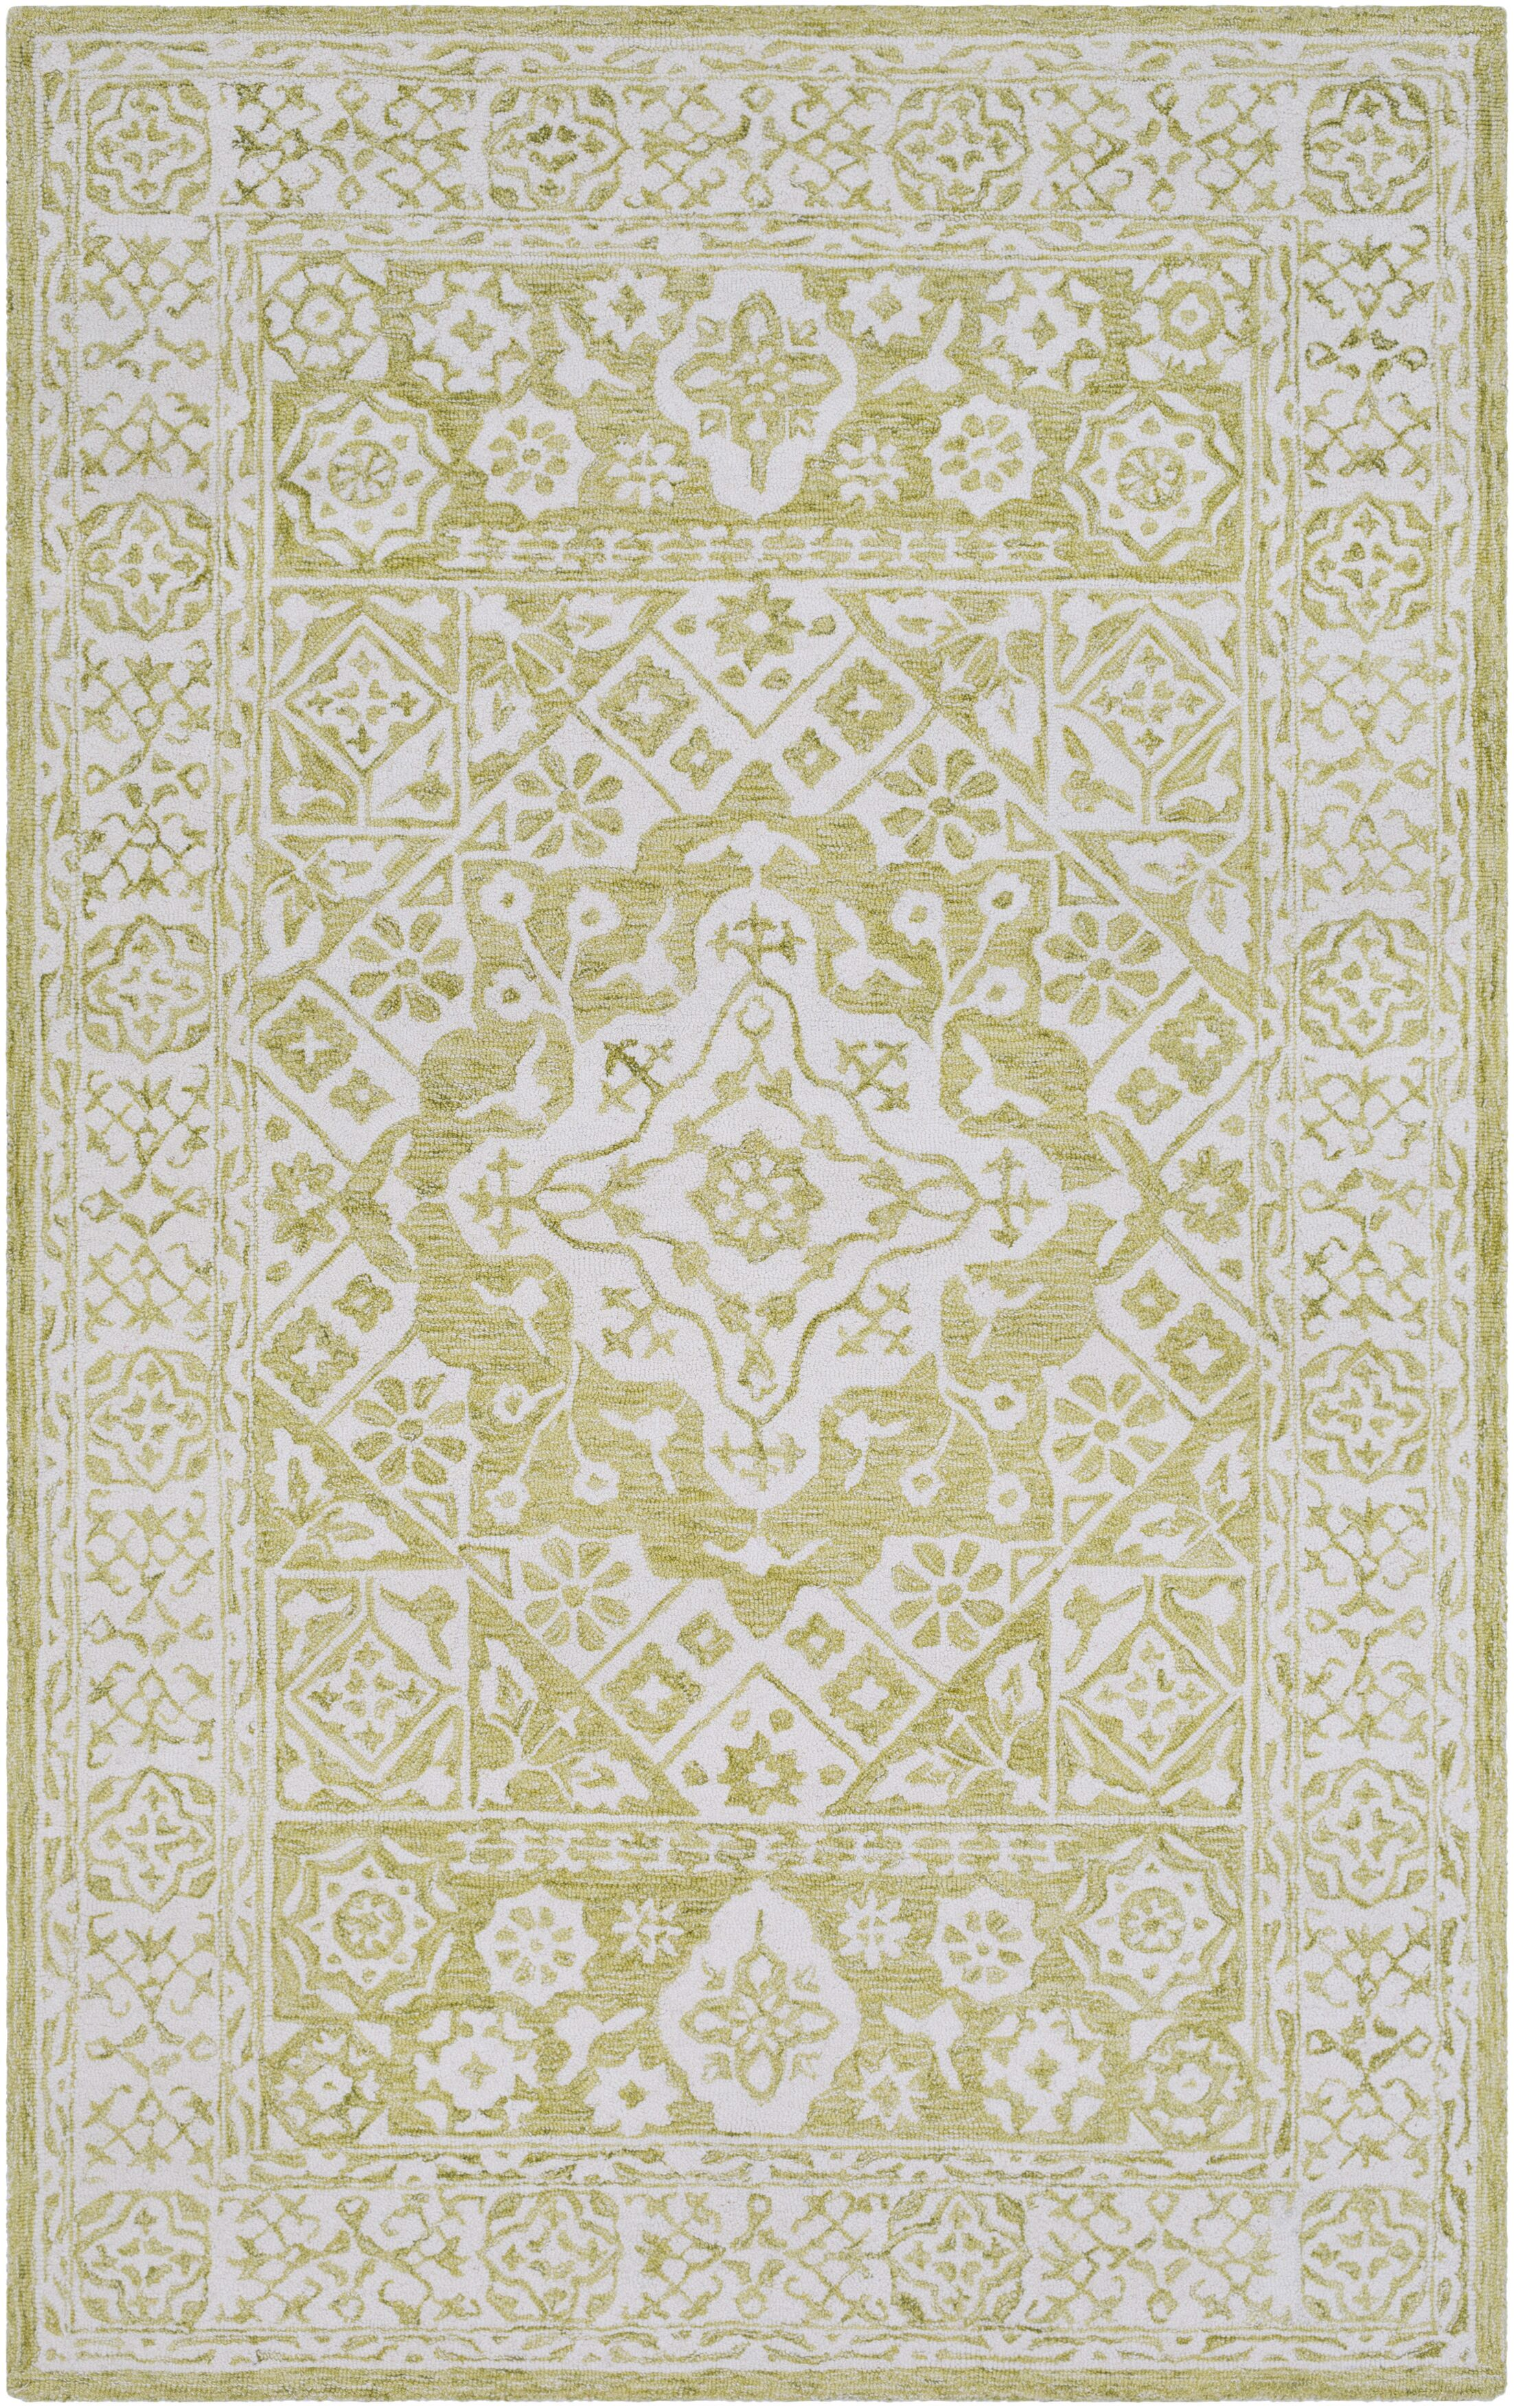 Baconton Hand-Hooked Lime/White Area Rug Rug Size: Rectangle 5' x 7'6